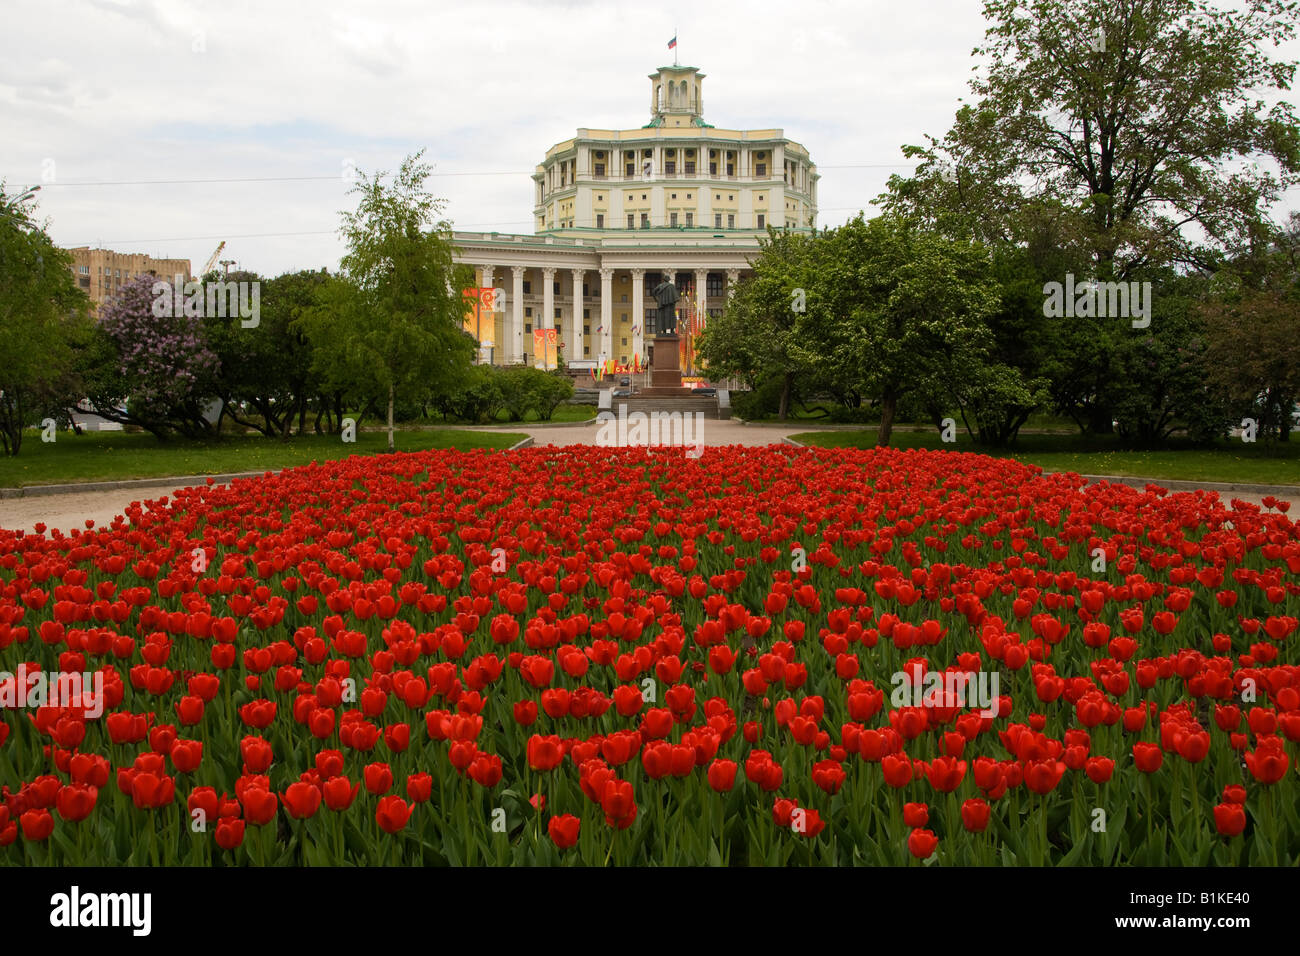 Red tulips and Russian Army Theatre, Suvorovskaya Ploschad, Moscow, Russia - Stock Image